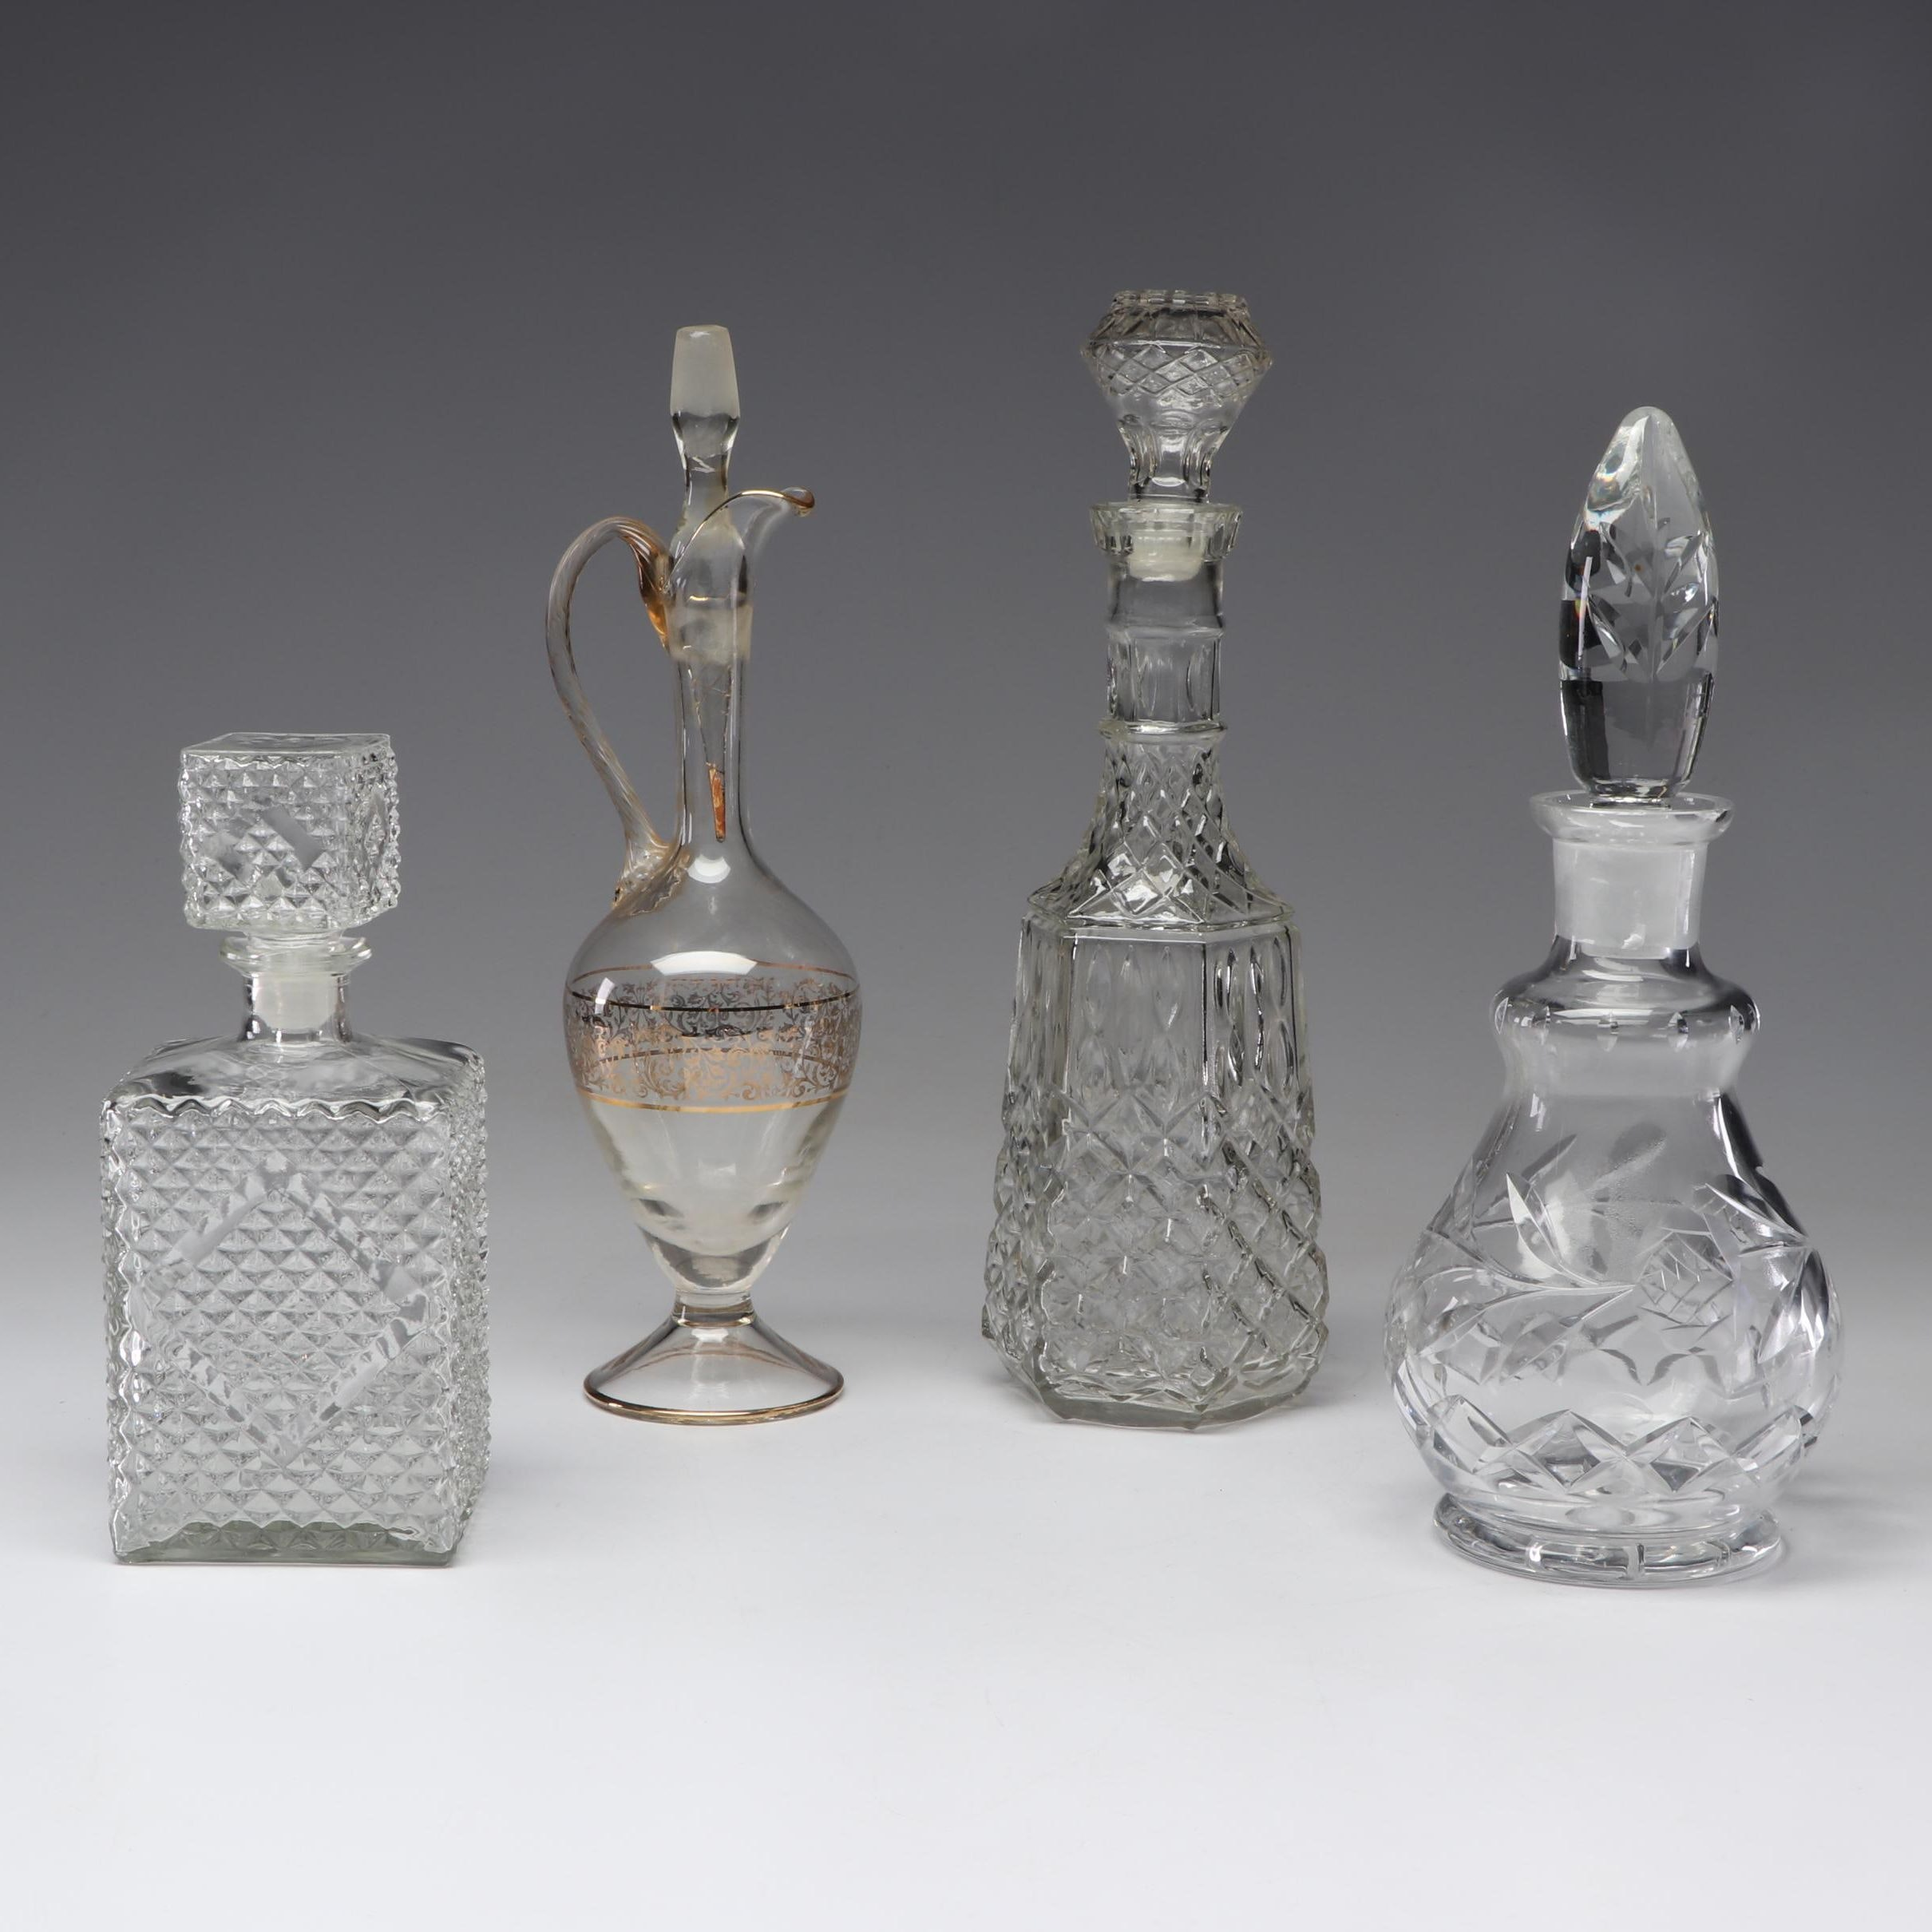 Collection of Cut and Pressed Glass Decanters